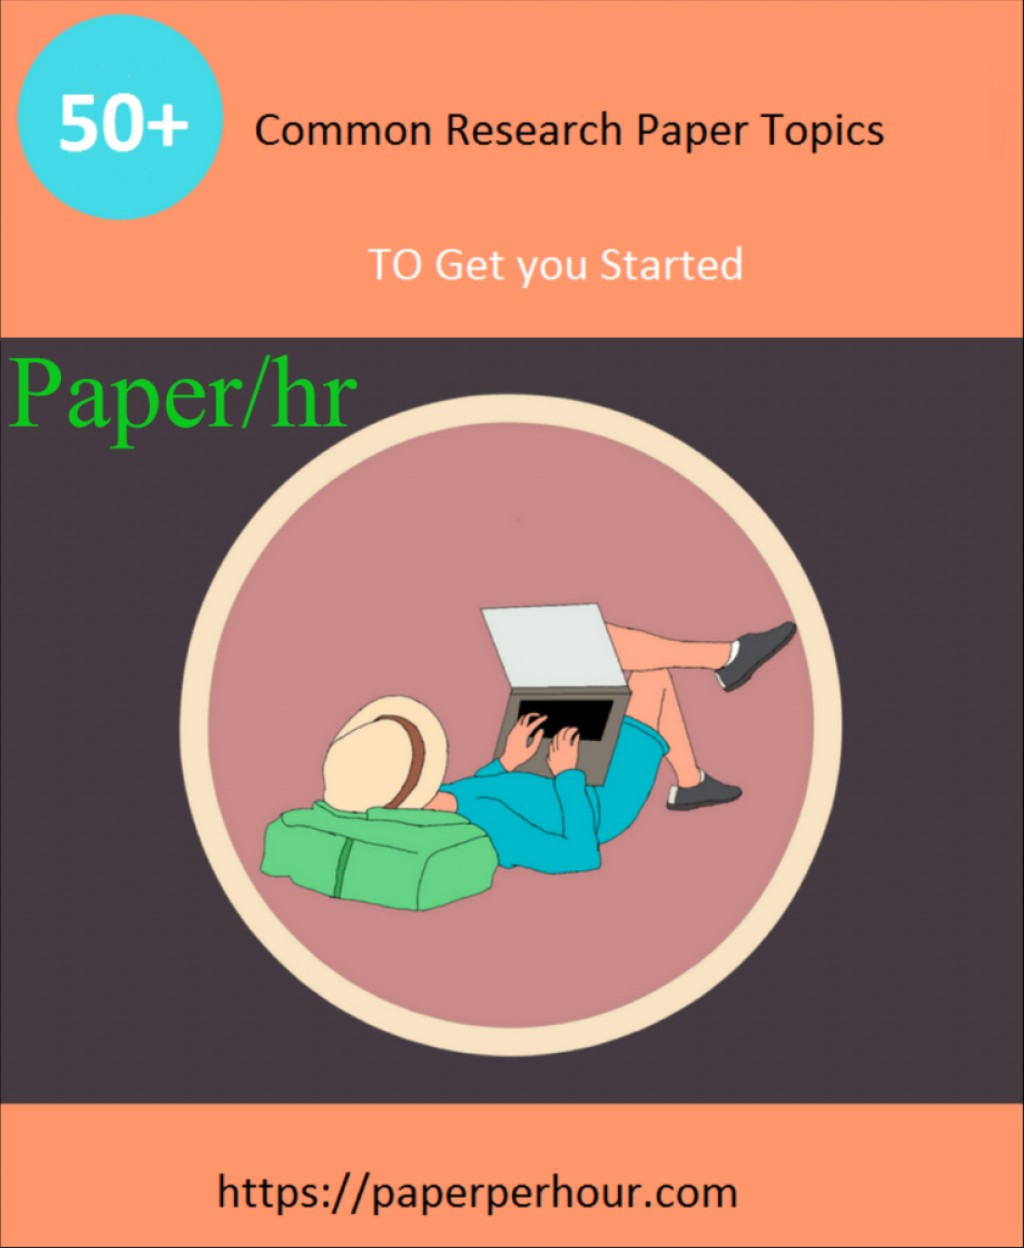 017 Get Help With Research Paper Per Hour Stunning Writing A Large